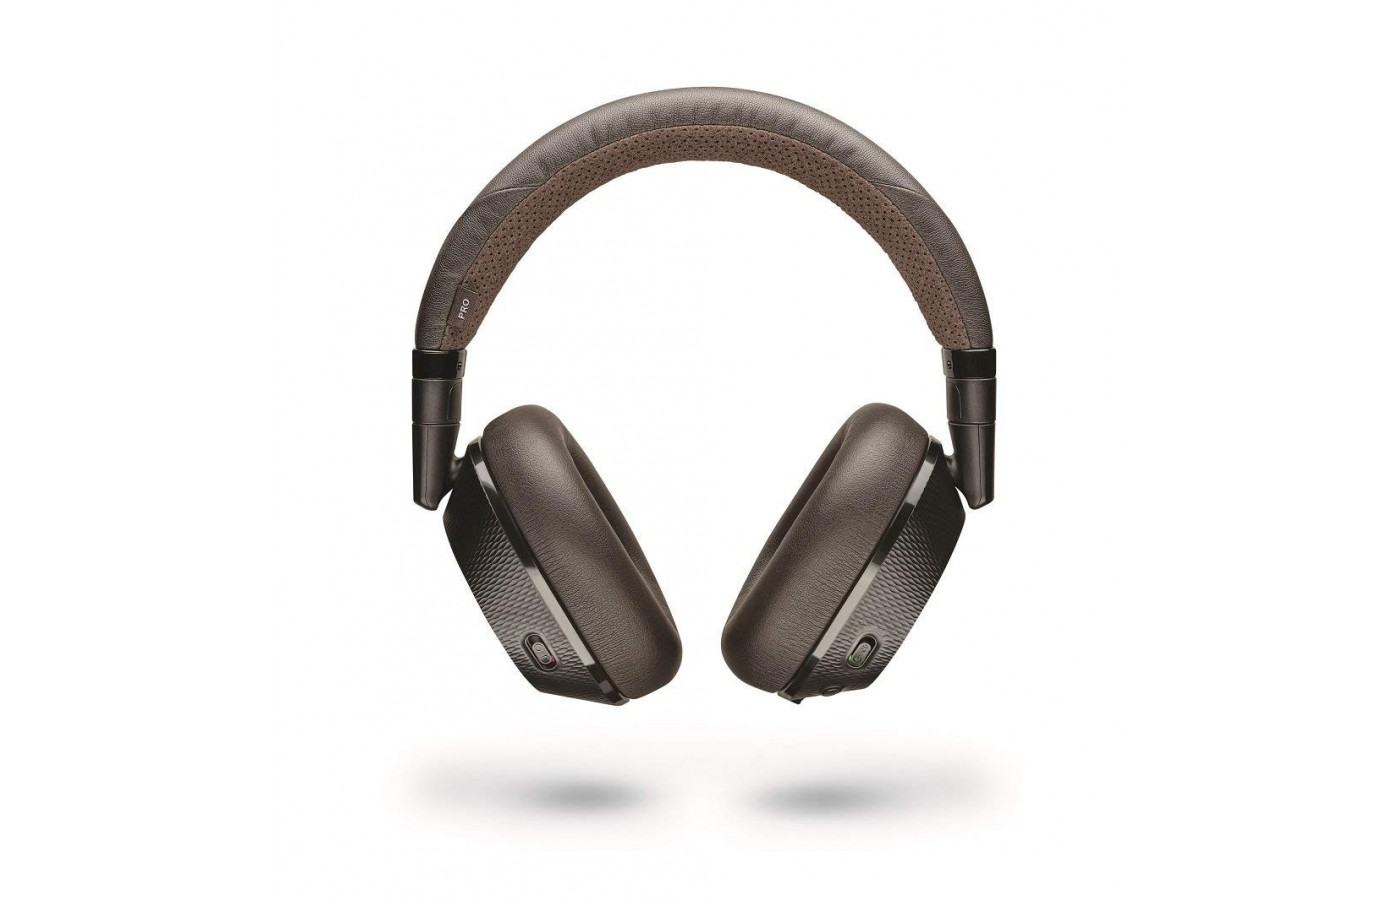 The ear cups and headband of the BackBeat Pro 2 are lined with faux leather, making them extremely comfortable.